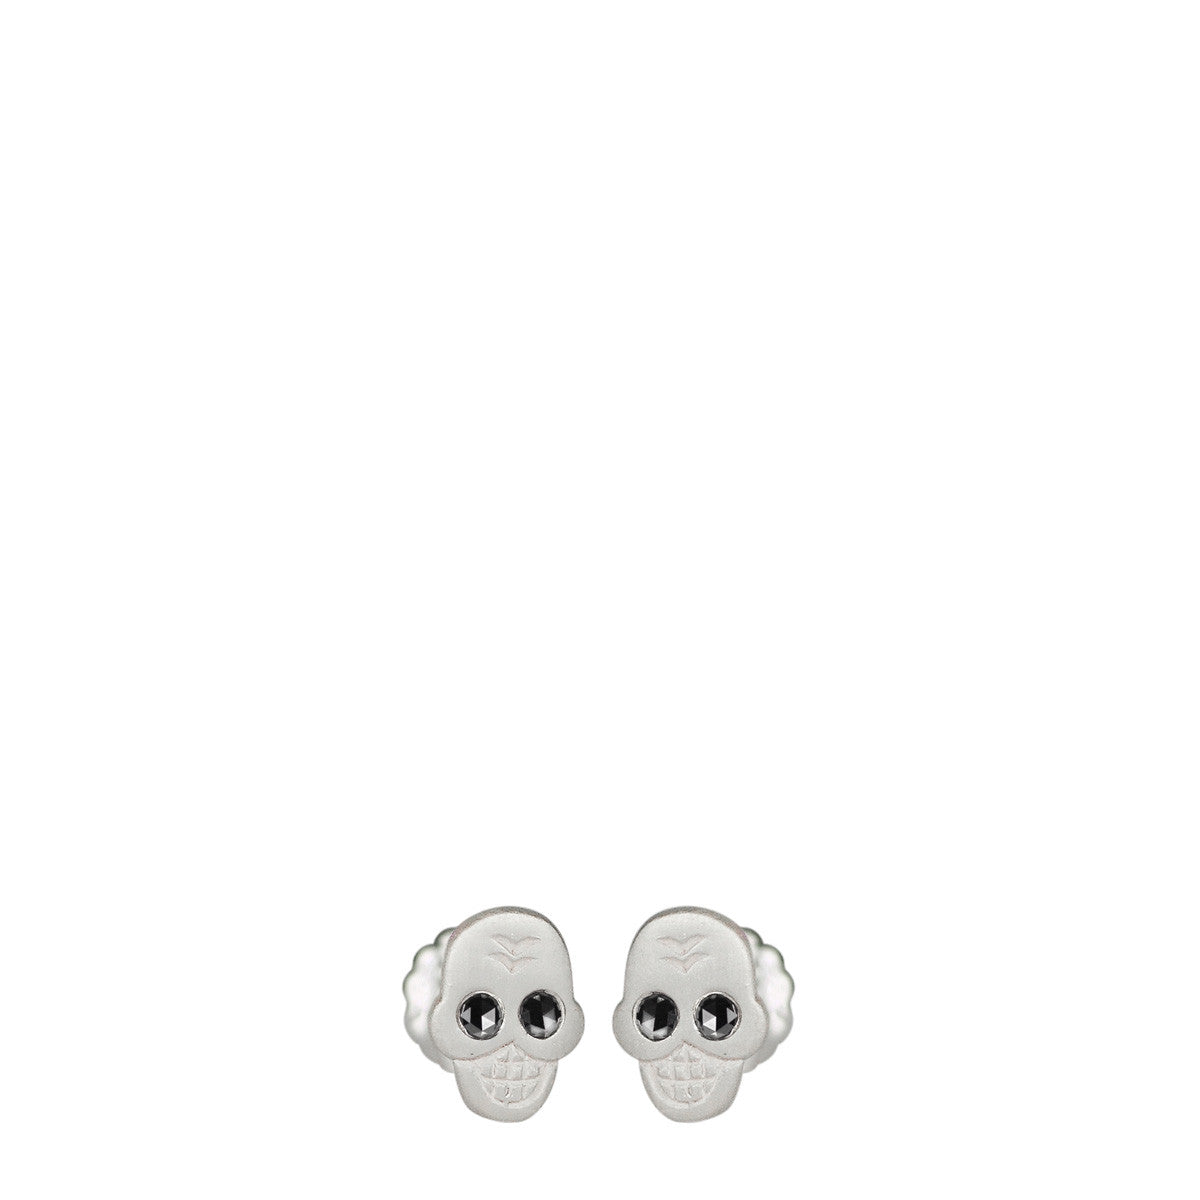 Sterling Silver Mini Skull Stud Earrings with Black Diamond Eyes